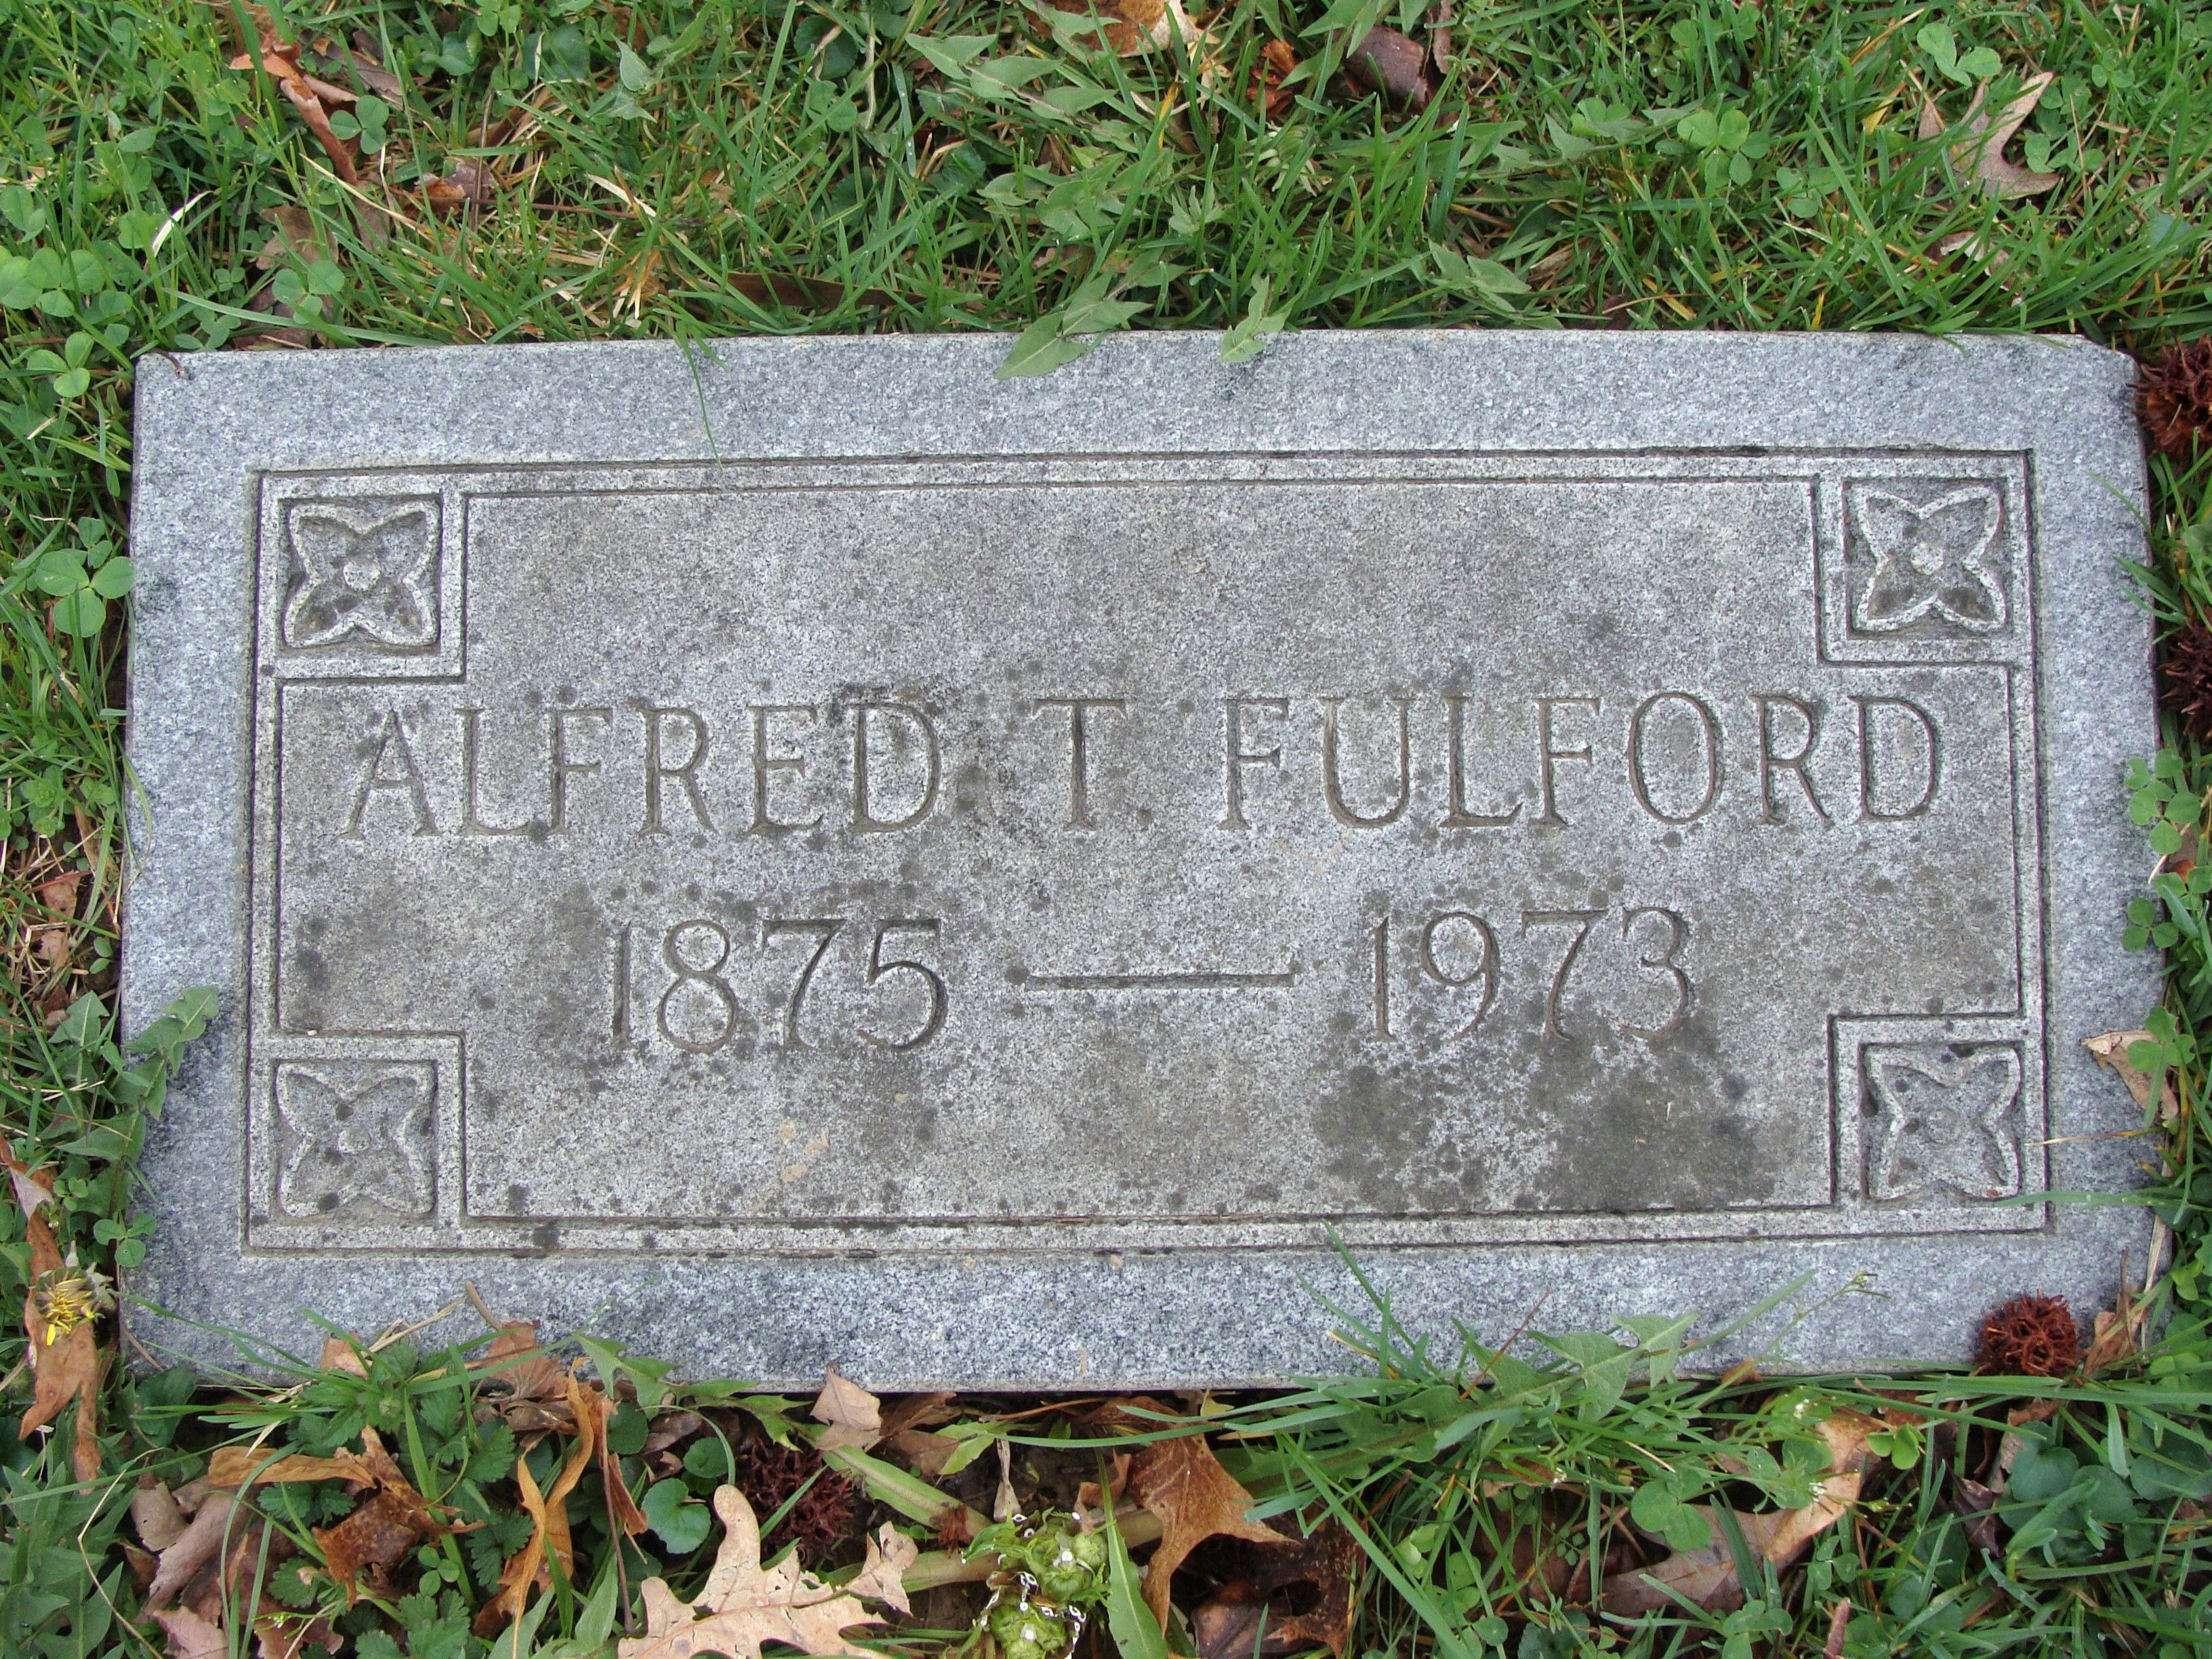 Alfred T